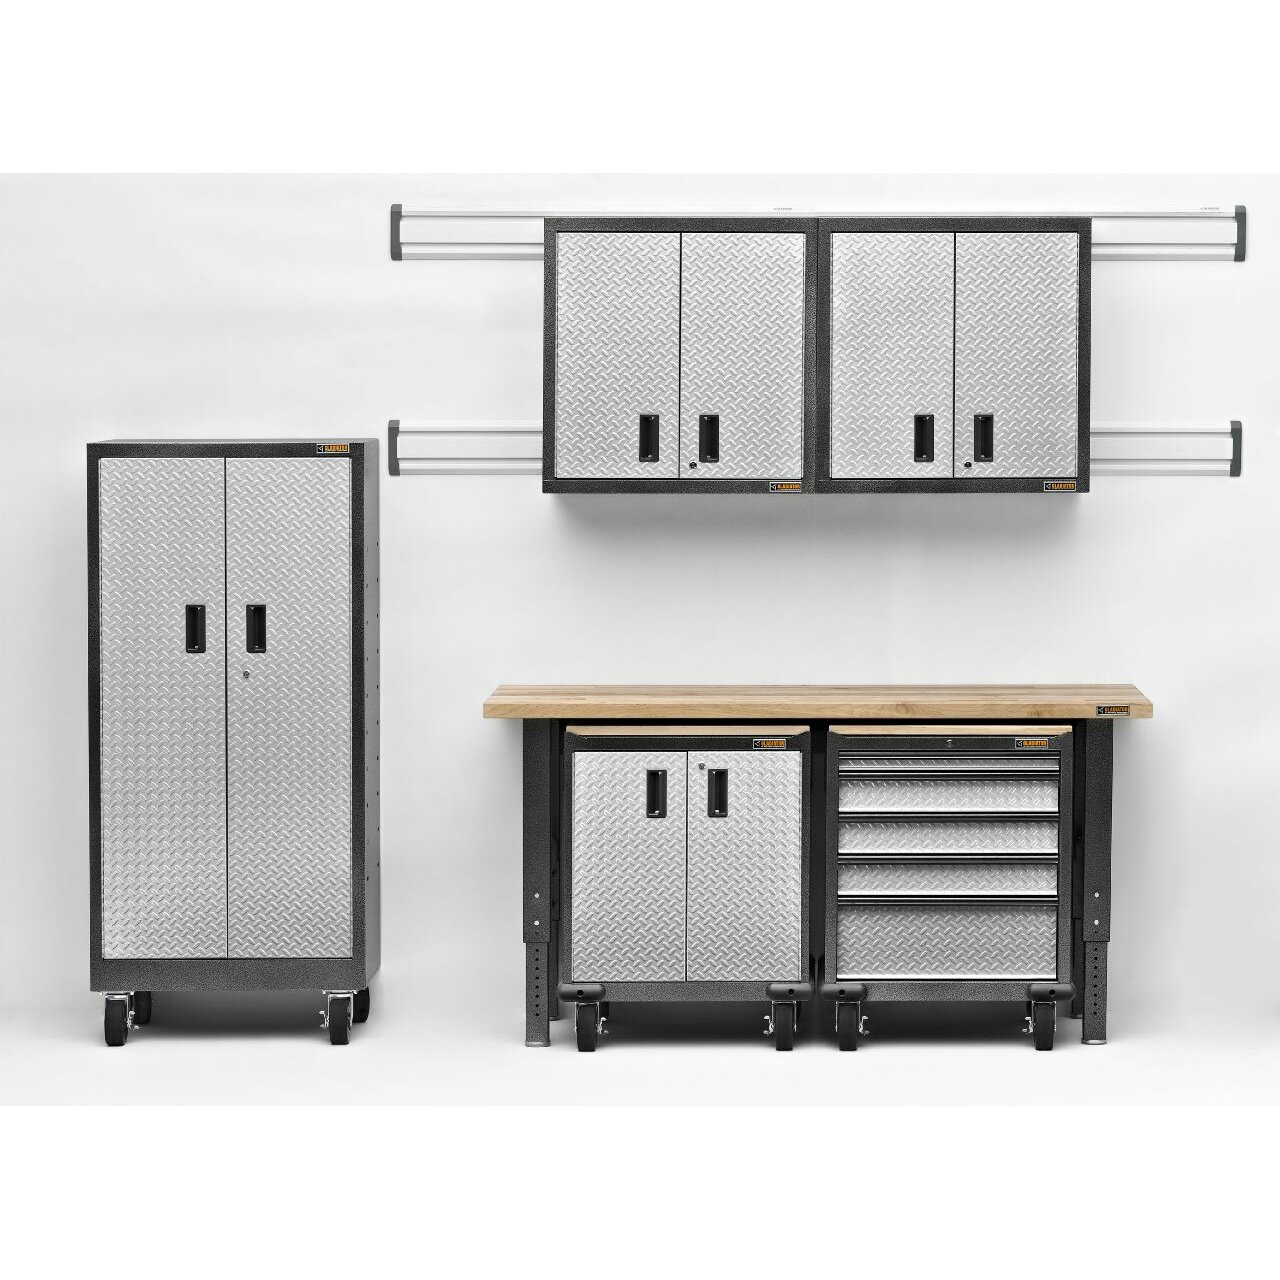 2e2982f6 additionally Gladiator Premier Series Pre Assembled 30 H X 30 W X 12 D Steel 2 Door Garage Wall Cabi  In Silver Tread GGW1102 together with Watch furthermore Watch together with Wayborn Birchwood Sideboard W Wine Rack In Black 5708B. on office max storage cabinet